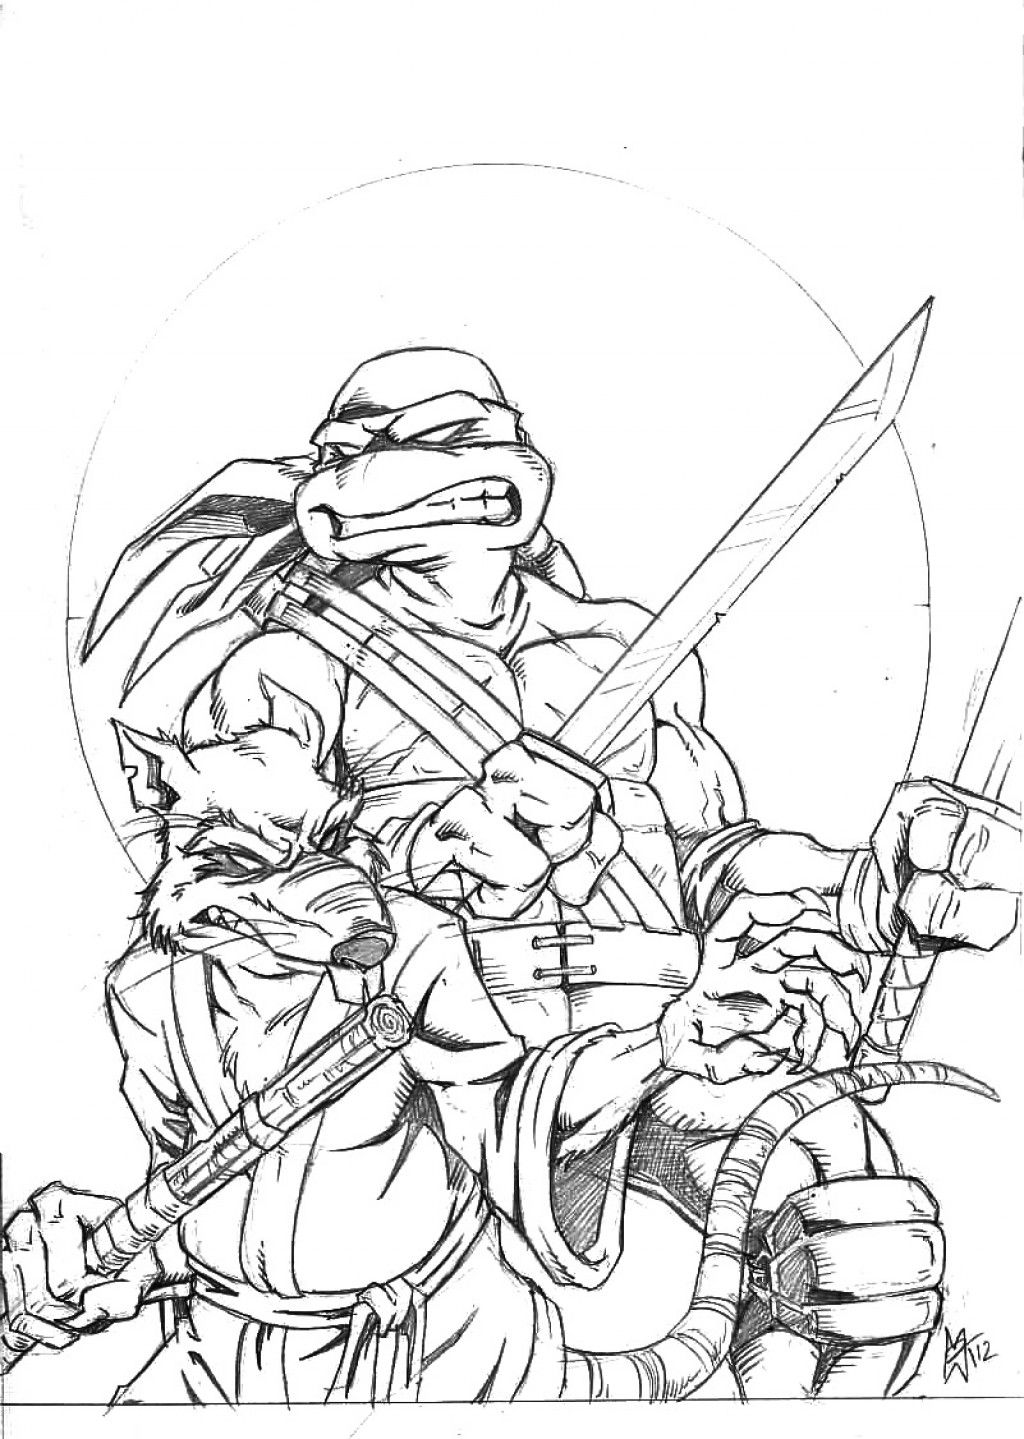 teenage mutant ninja turtles coloring picture jacob 4 harper 2